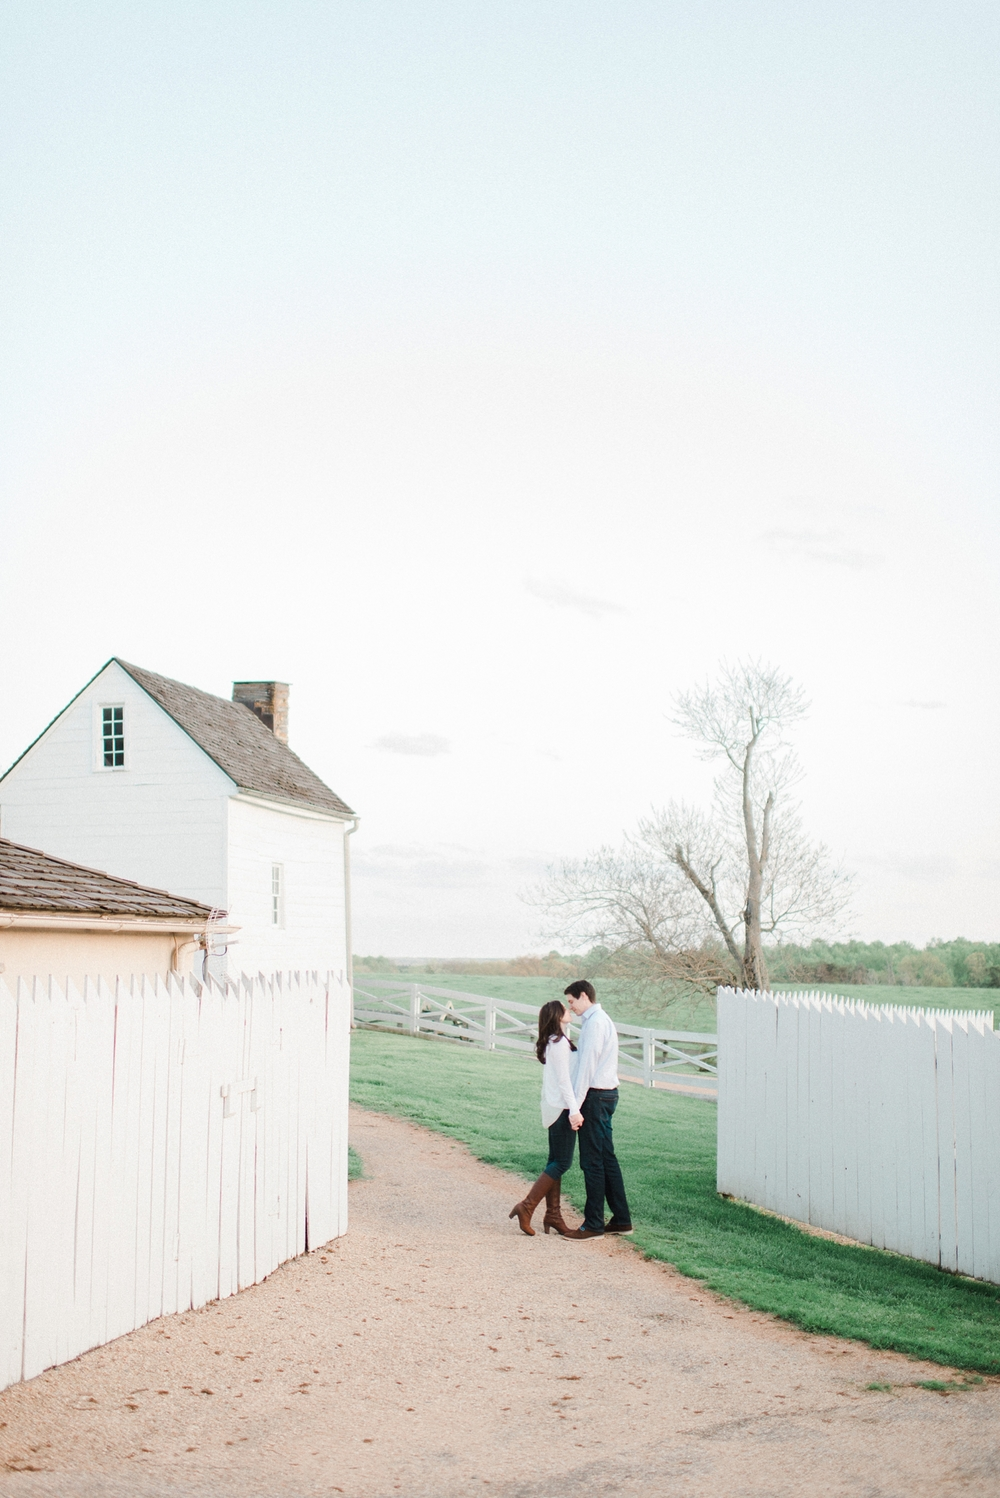 virginia_wedding_photographer_charlottesville_engagemnet_ashlawn_highland_0034.jpg